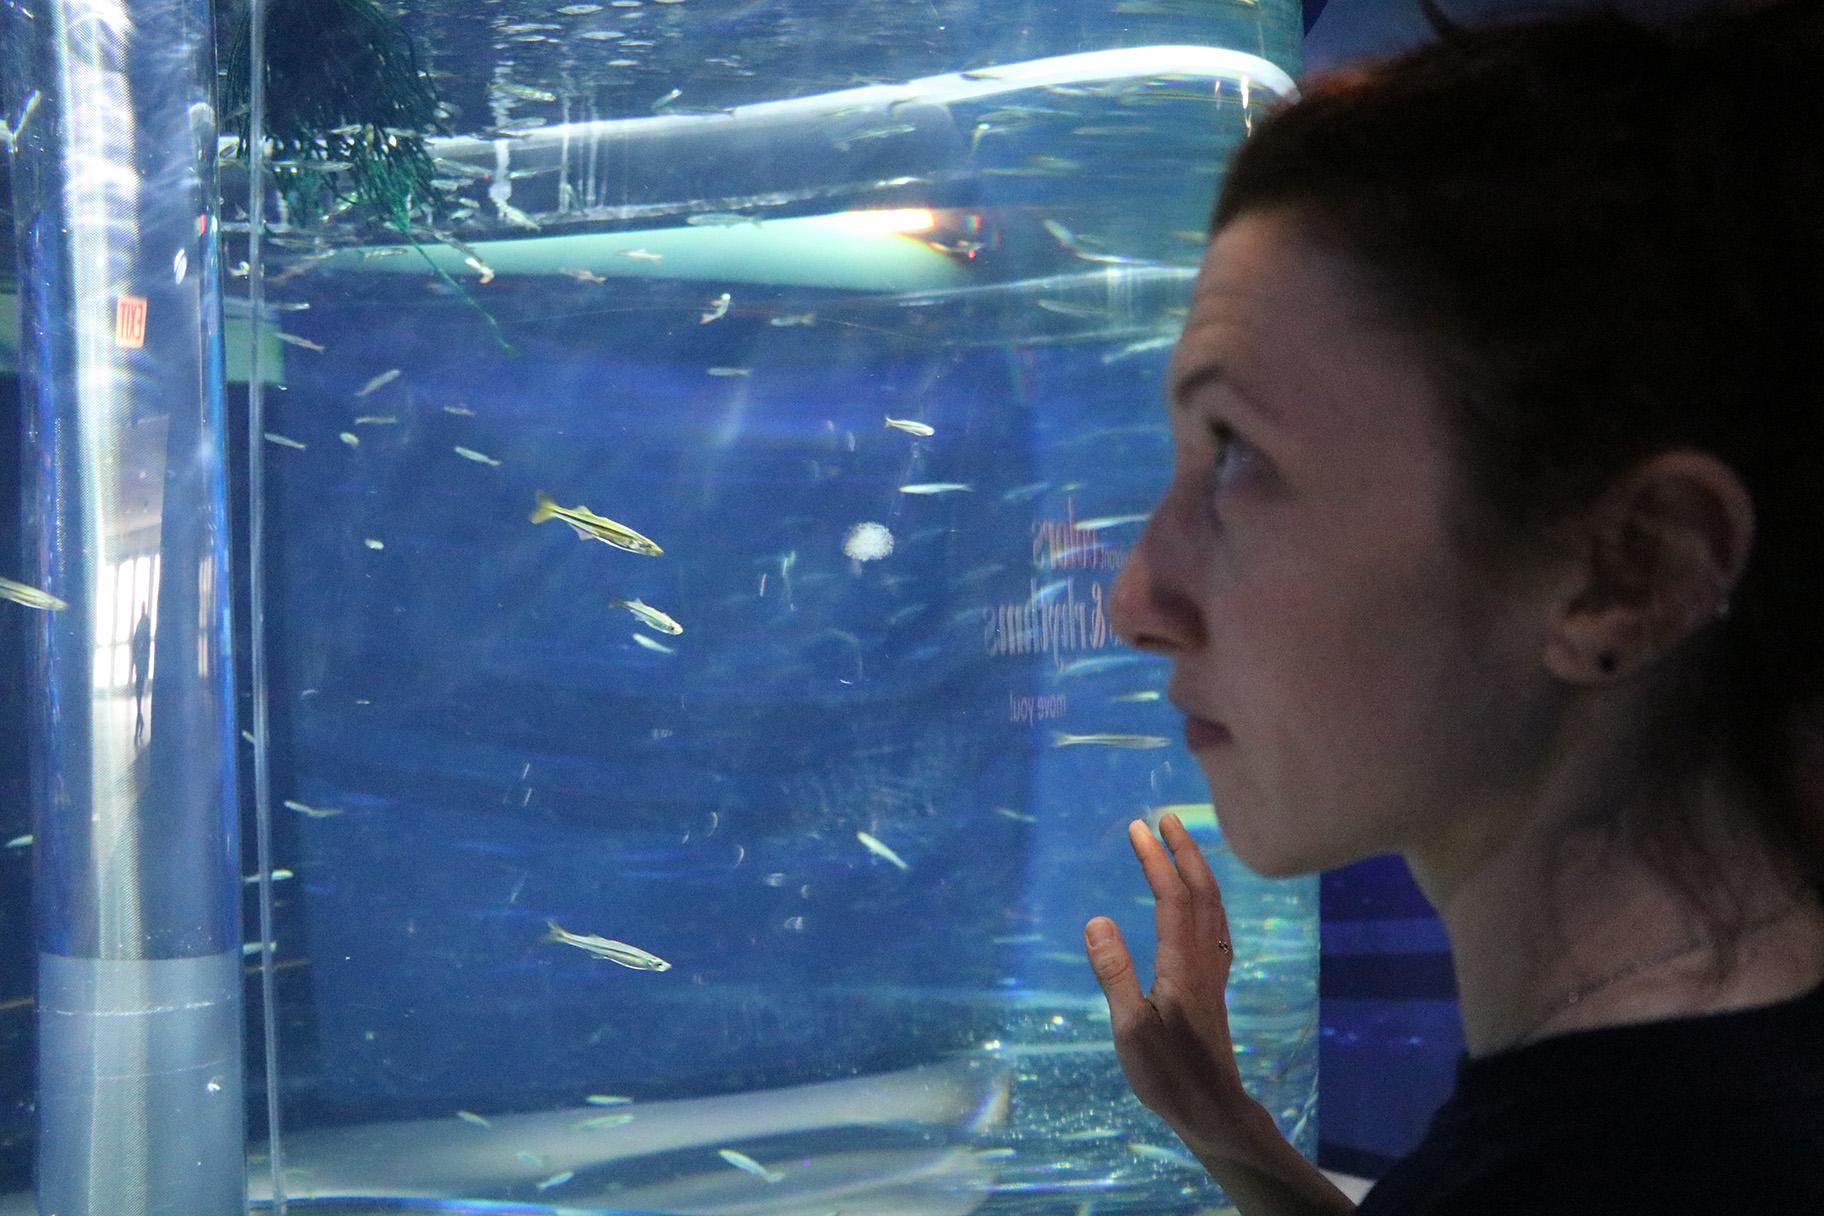 Senior aquarist Erika Moss observes silversides, schooling fish which attract many predators. (Evan Garcia / WTTW News)